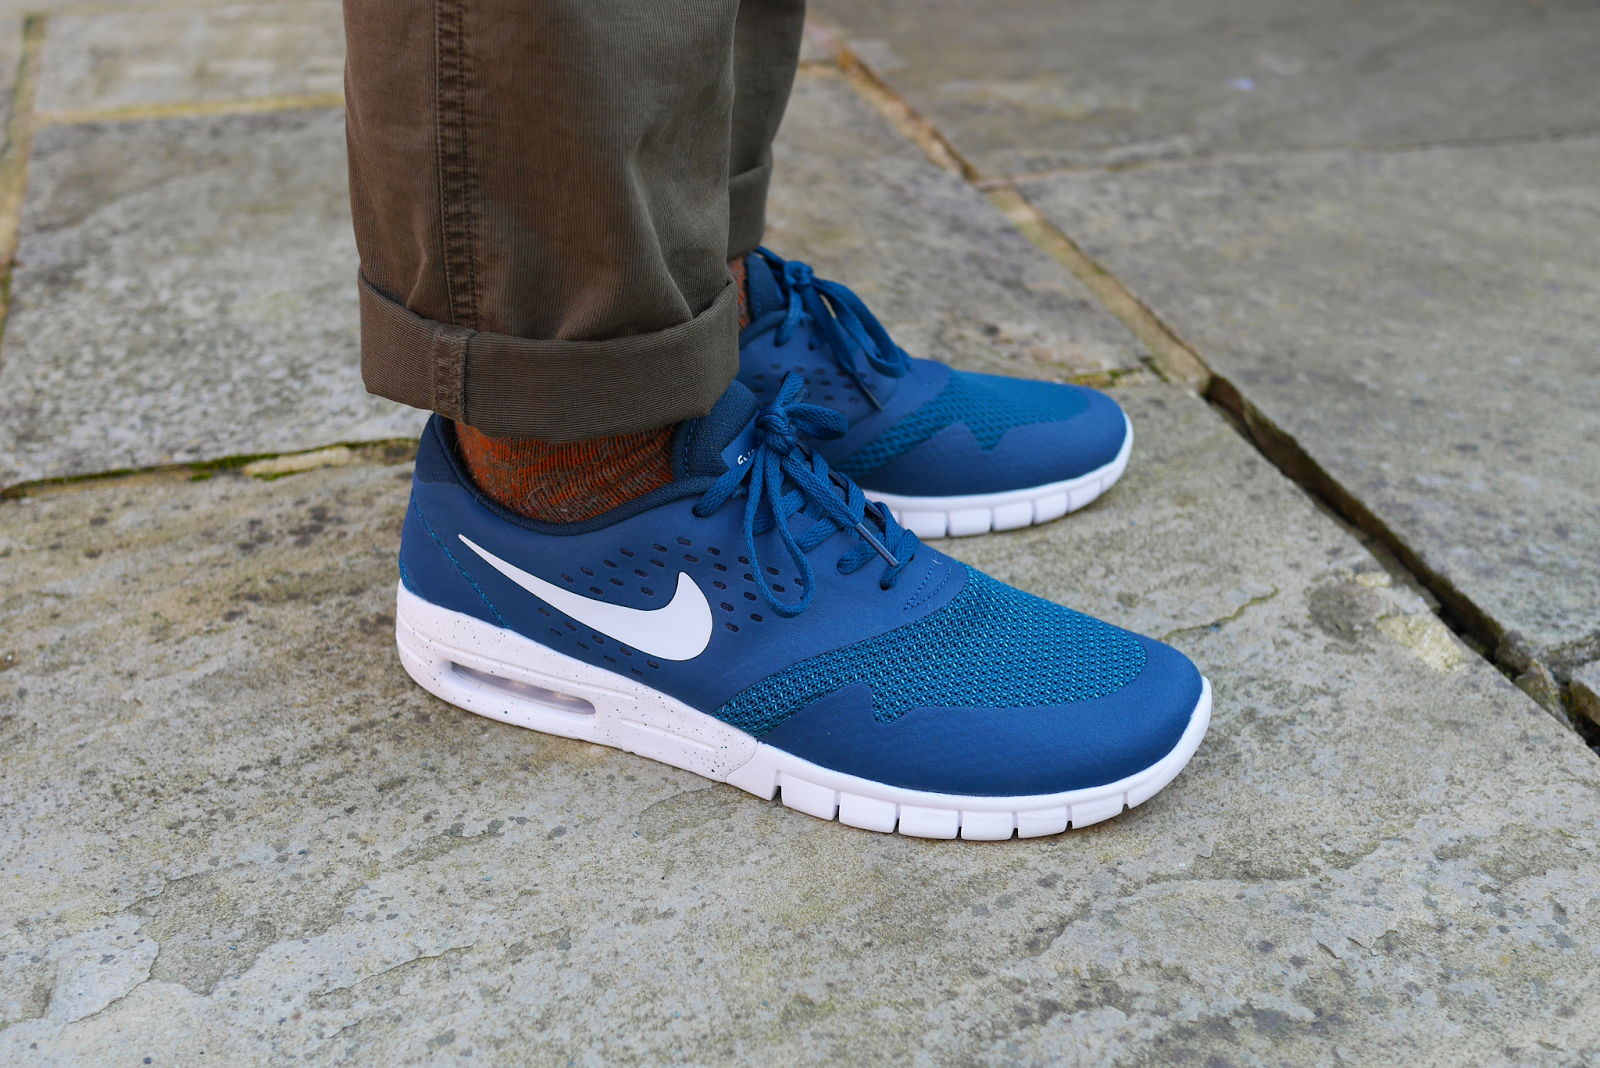 Nike Air Max Zero Hommes - Air Max Zero Fcendreion Nikes Réduction Vente En Ligne